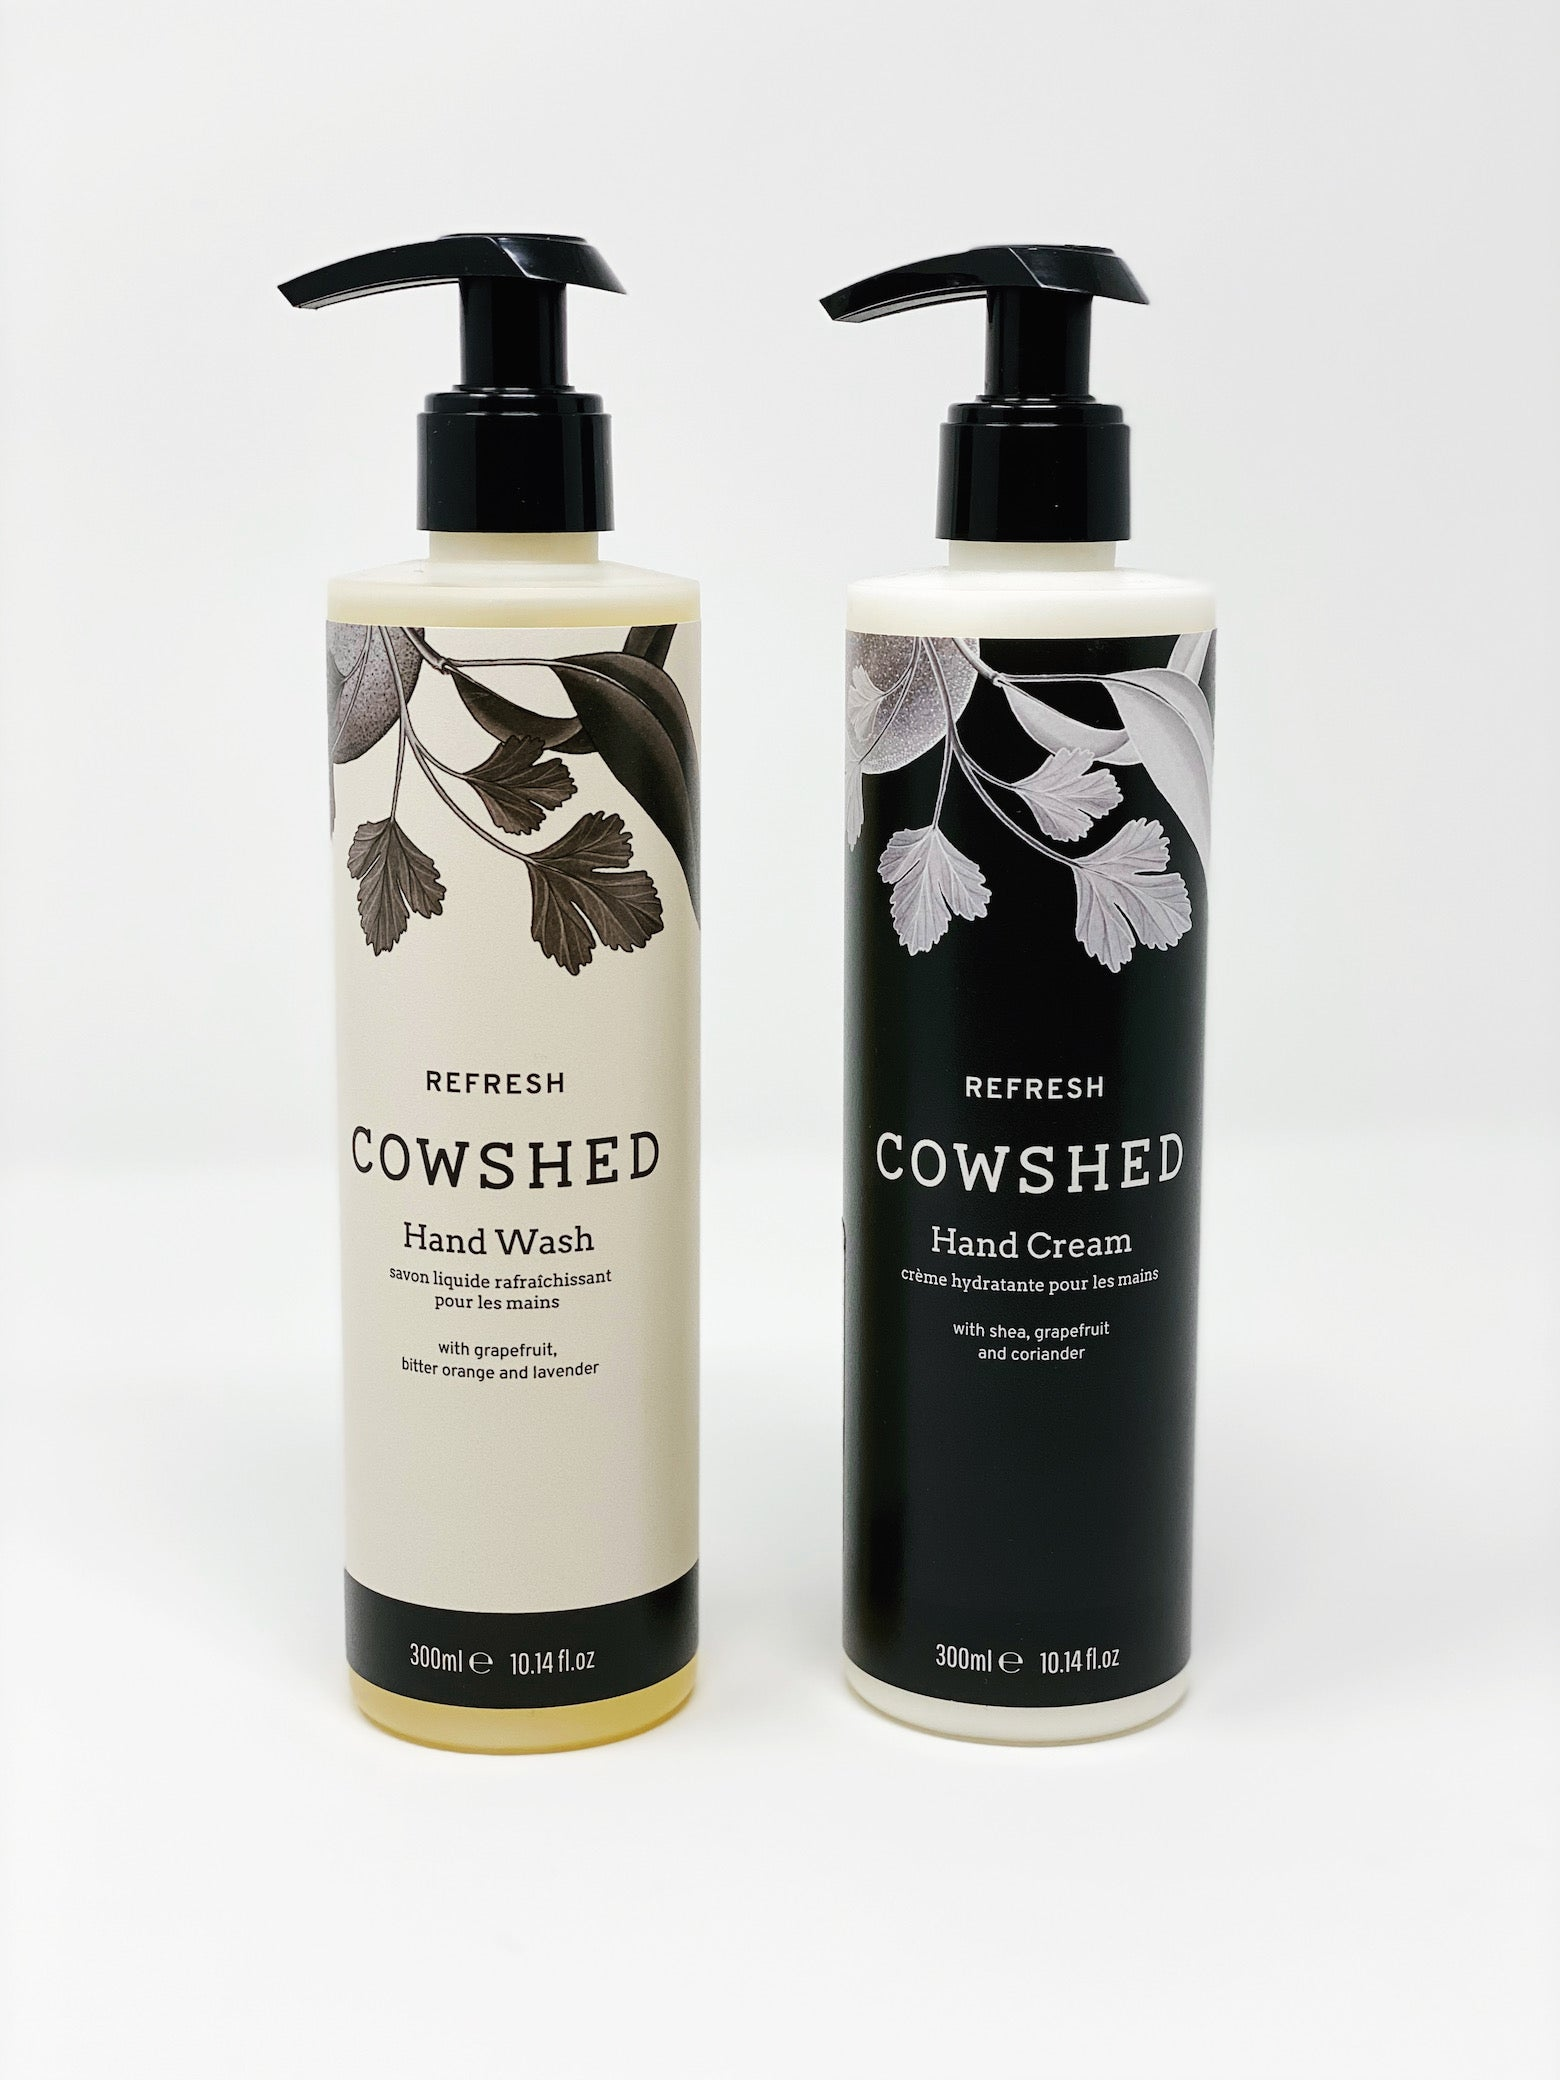 Cowshed-Refresh-Hand-Cream-300ml